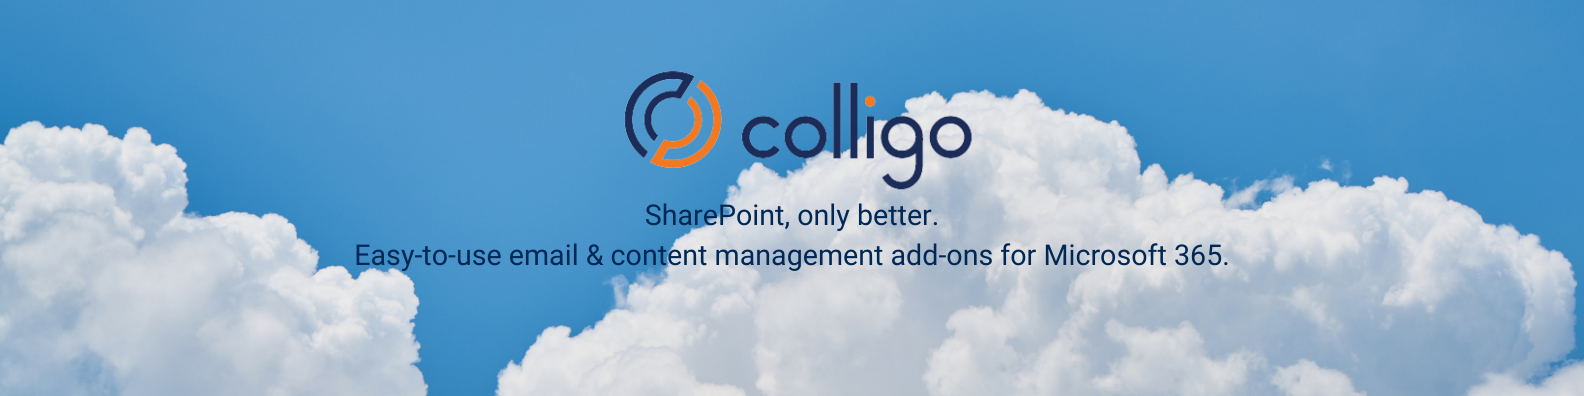 SharePoint, only better. Easy-to-use email & content management add-ons for Microsoft 365.-2.png